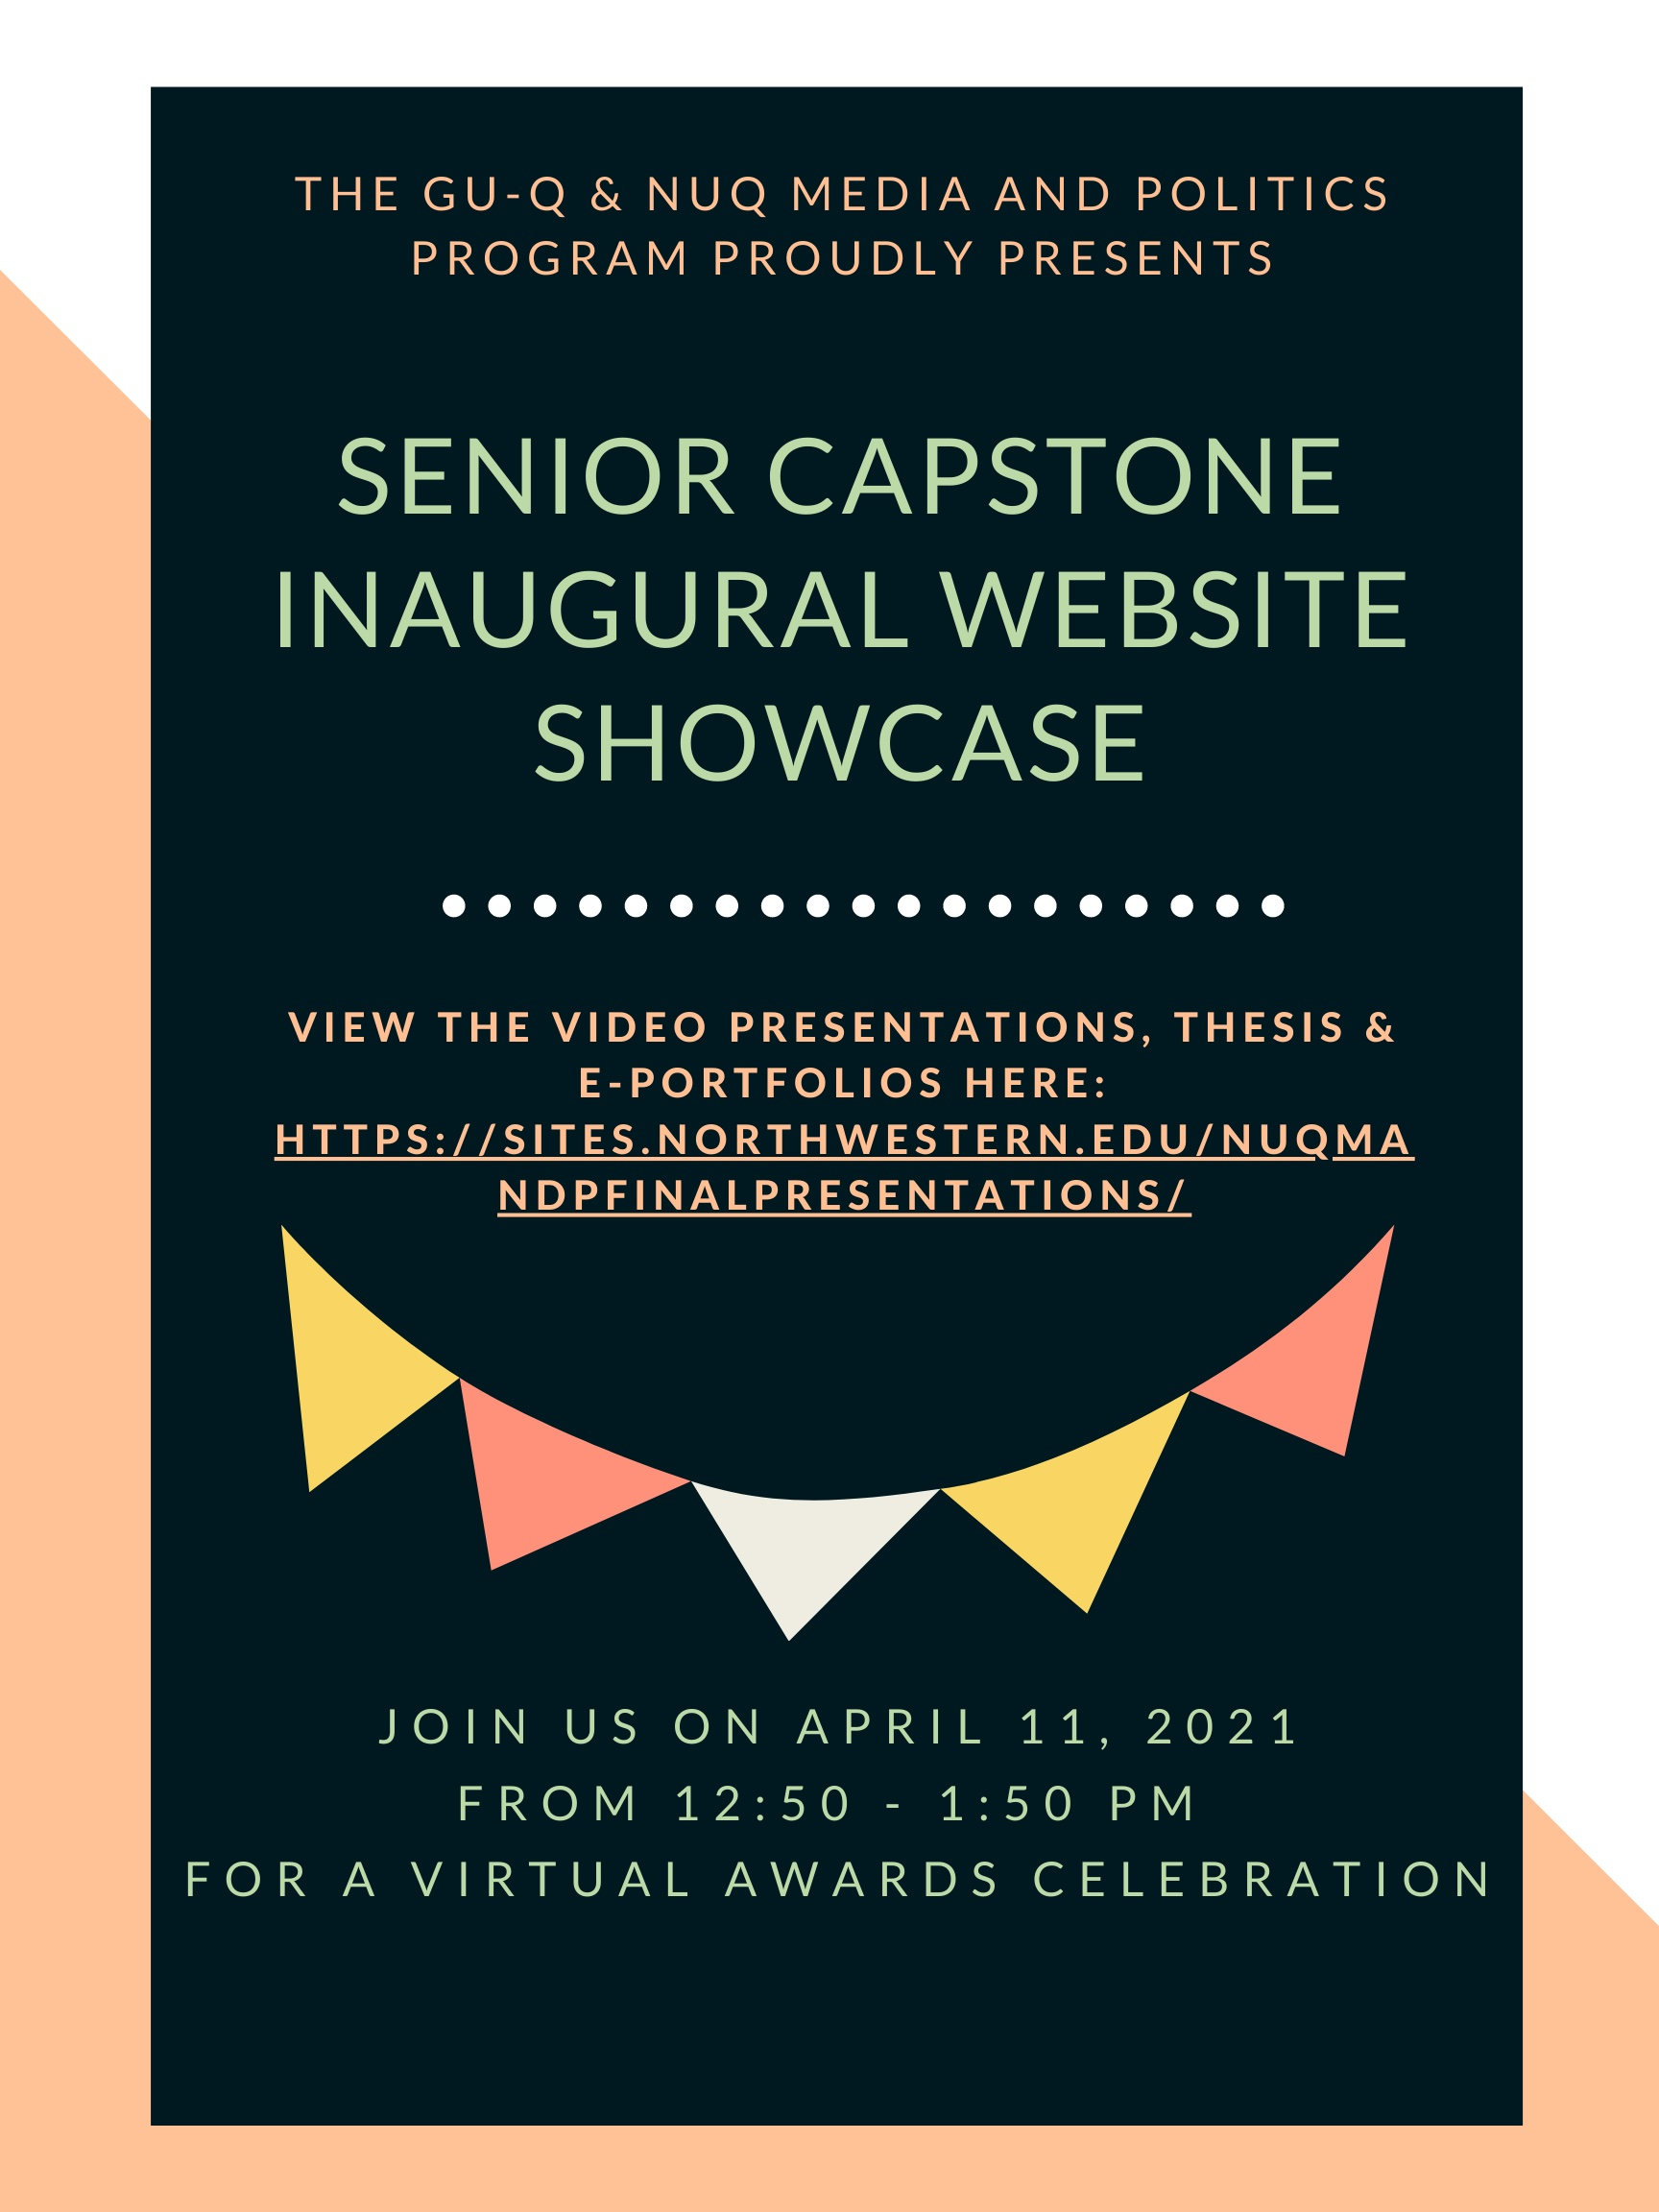 "Poster with a black background and the title of the event - ""Senior Capstone Inaugural Website Showcase"" and the link details to view videos of the media capstones by Northwestern University in Qatar and Georgetown University in Qatar. below is an image of buntings in yellow and orange symbolising a celebration as well as timing details for the event."